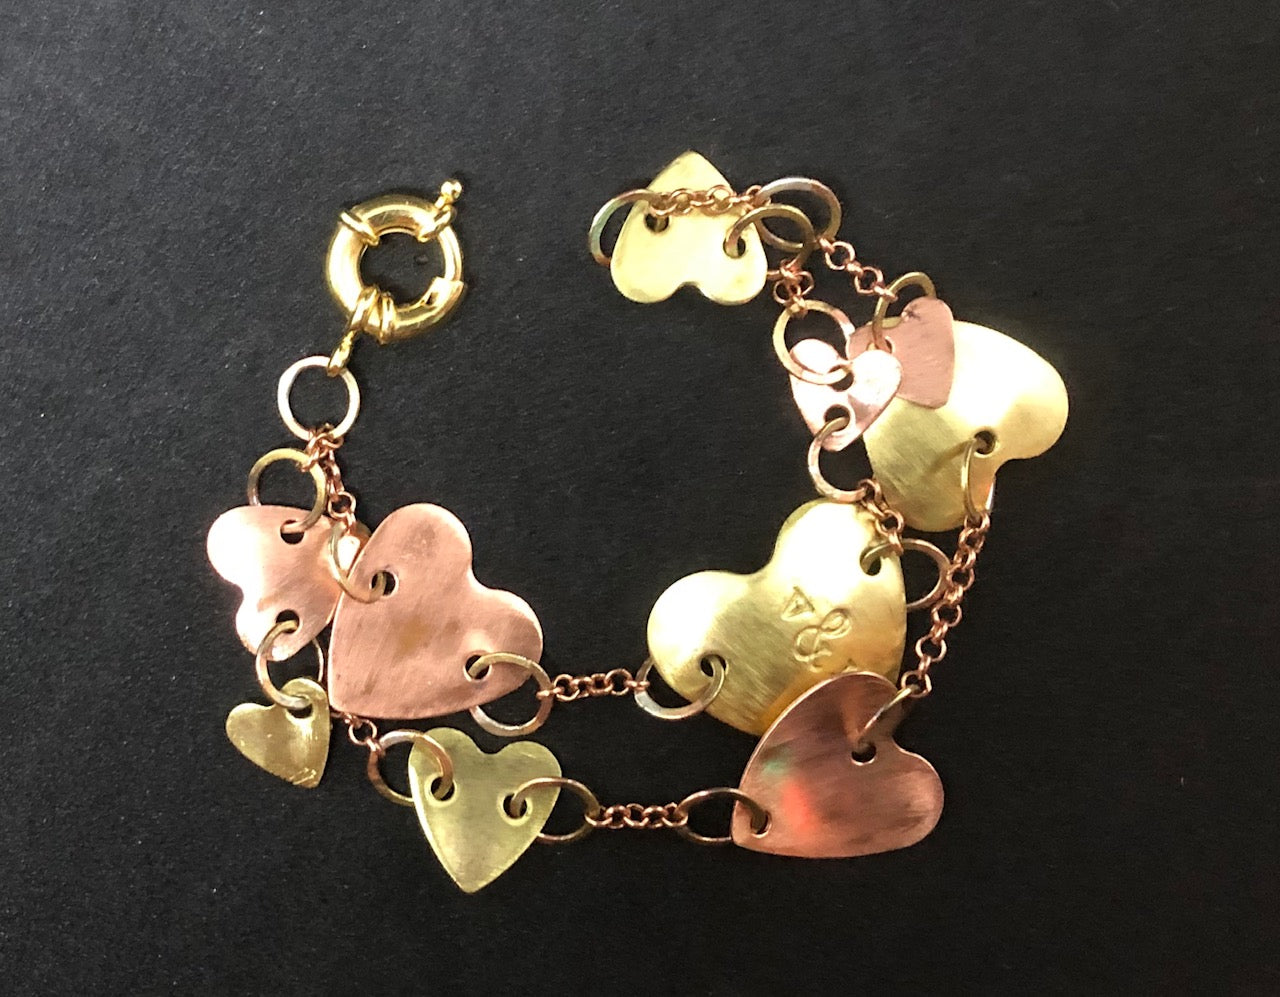 Chain of hearts 2-tier bracelet